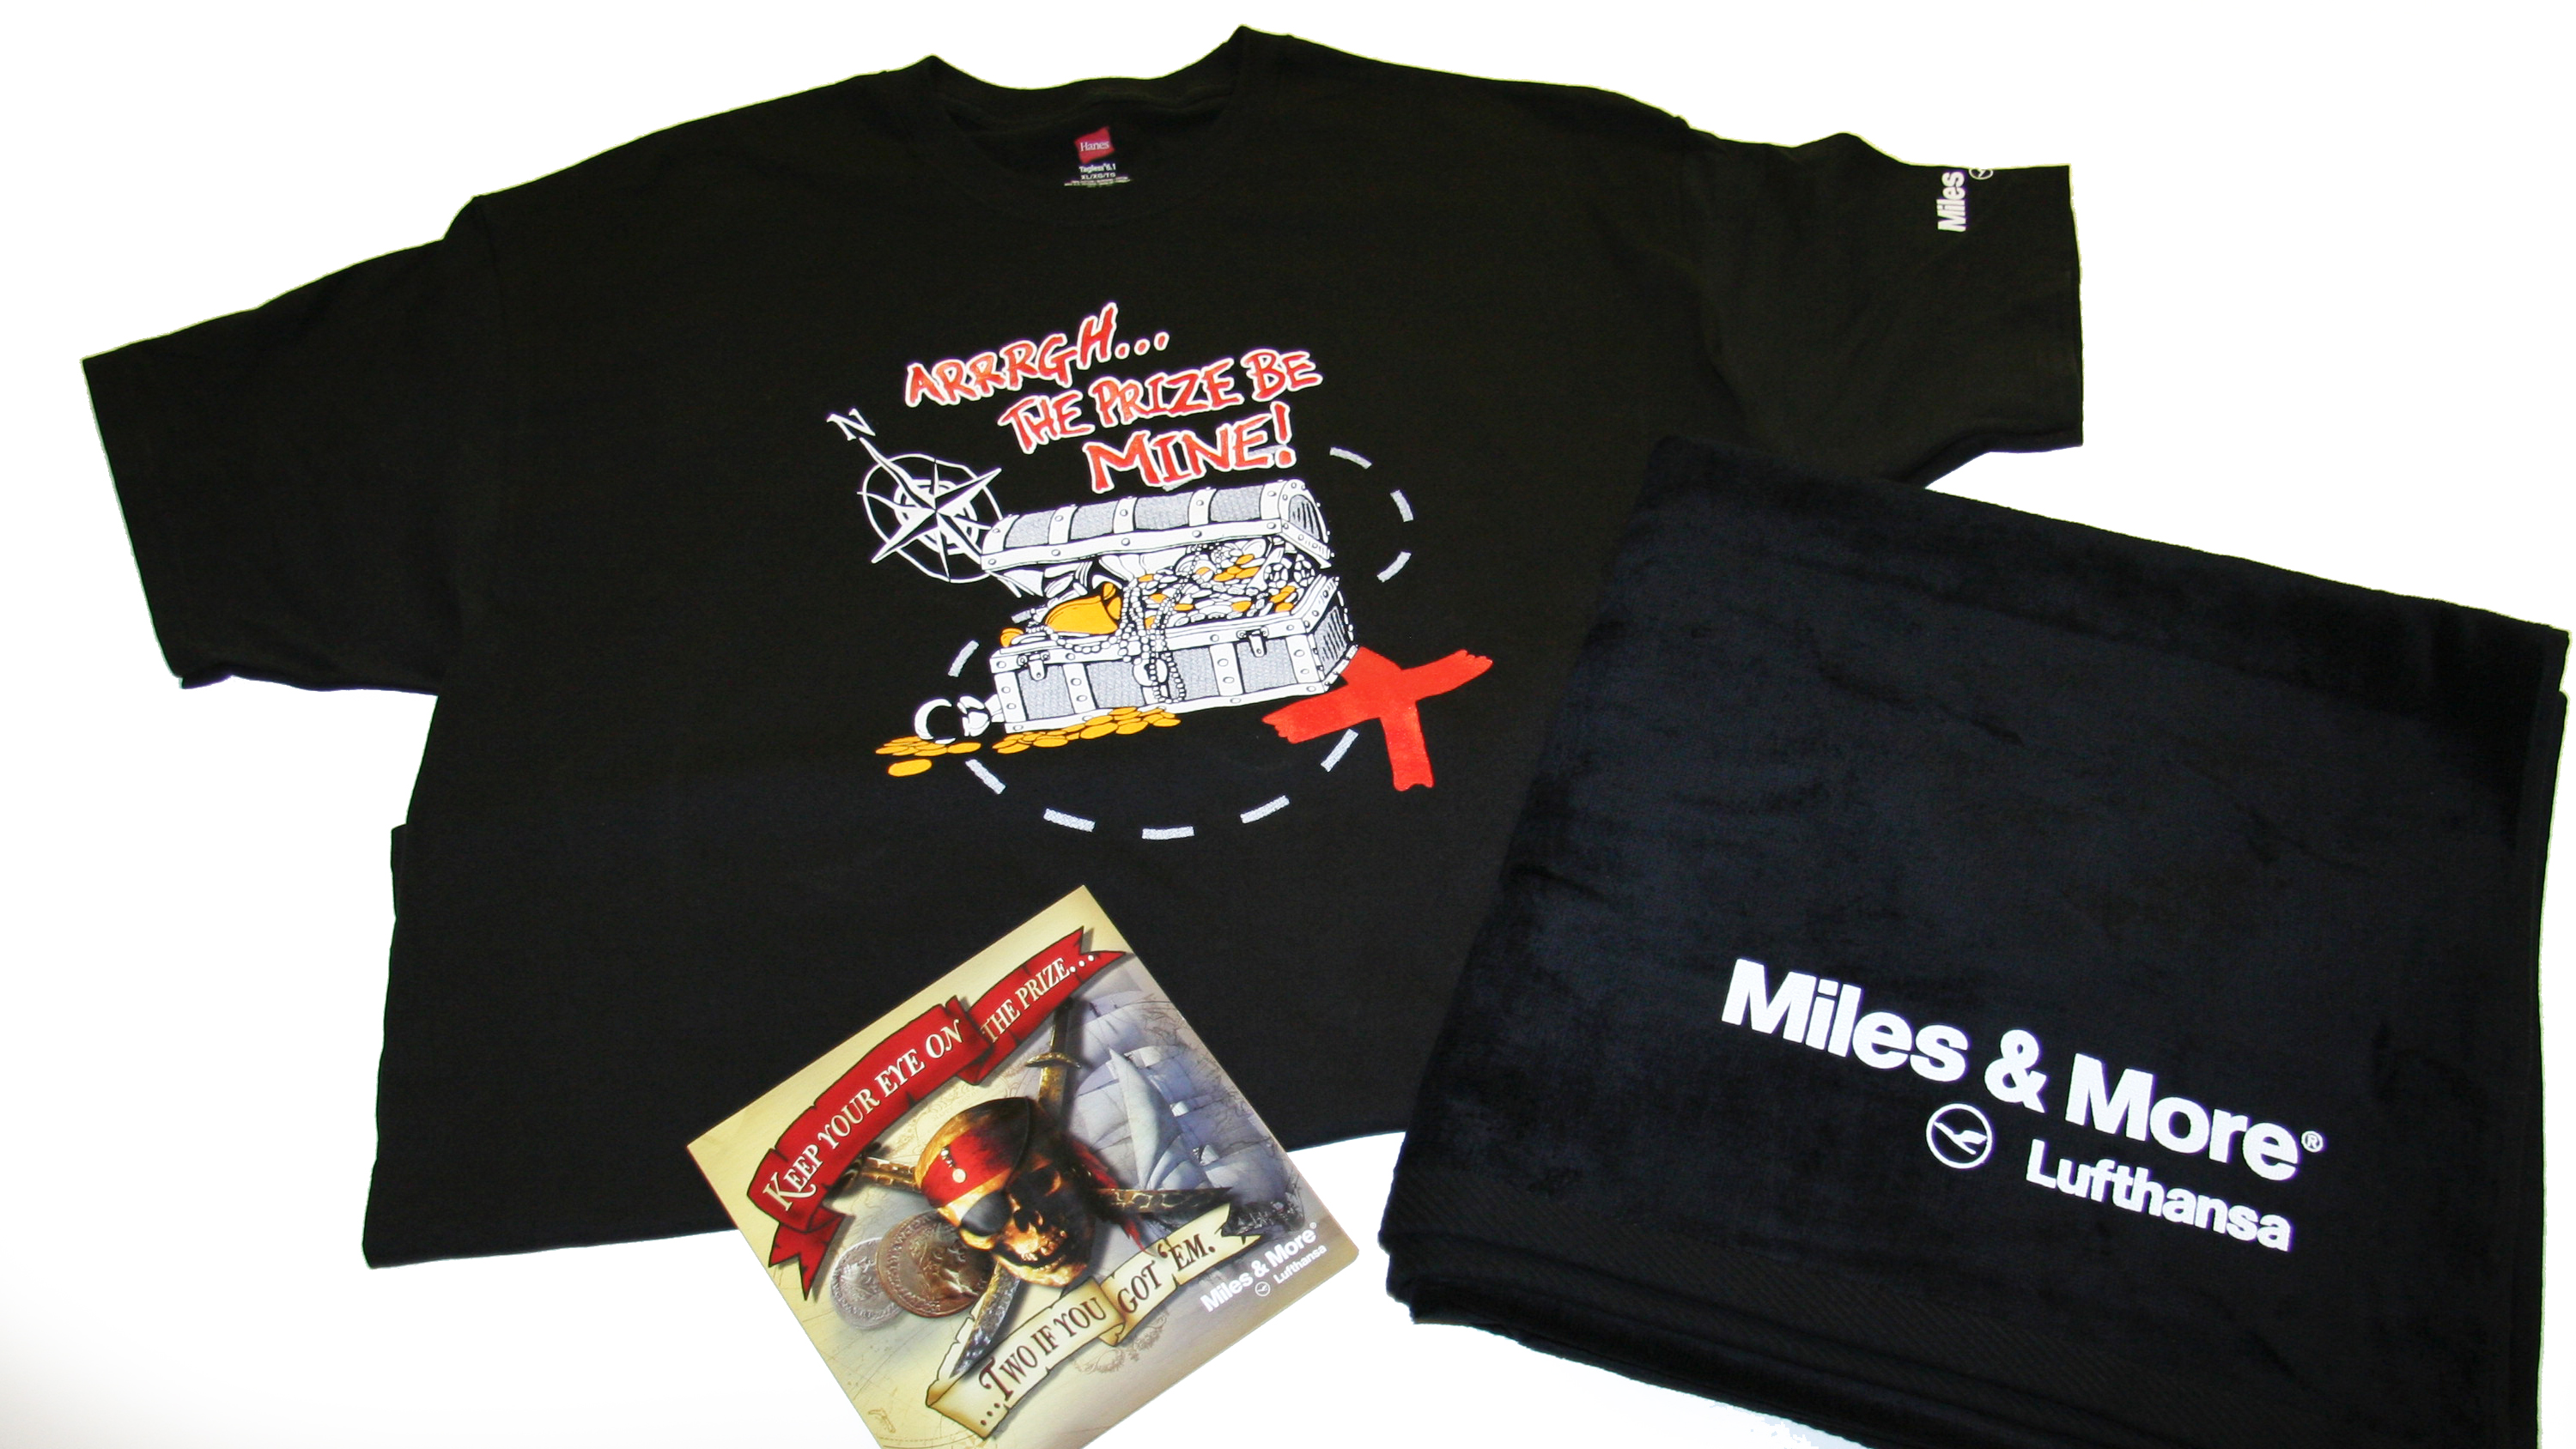 Lufthansa Miles & More Special Incentive Program Award Gifts T-Shirt and Beach Towel